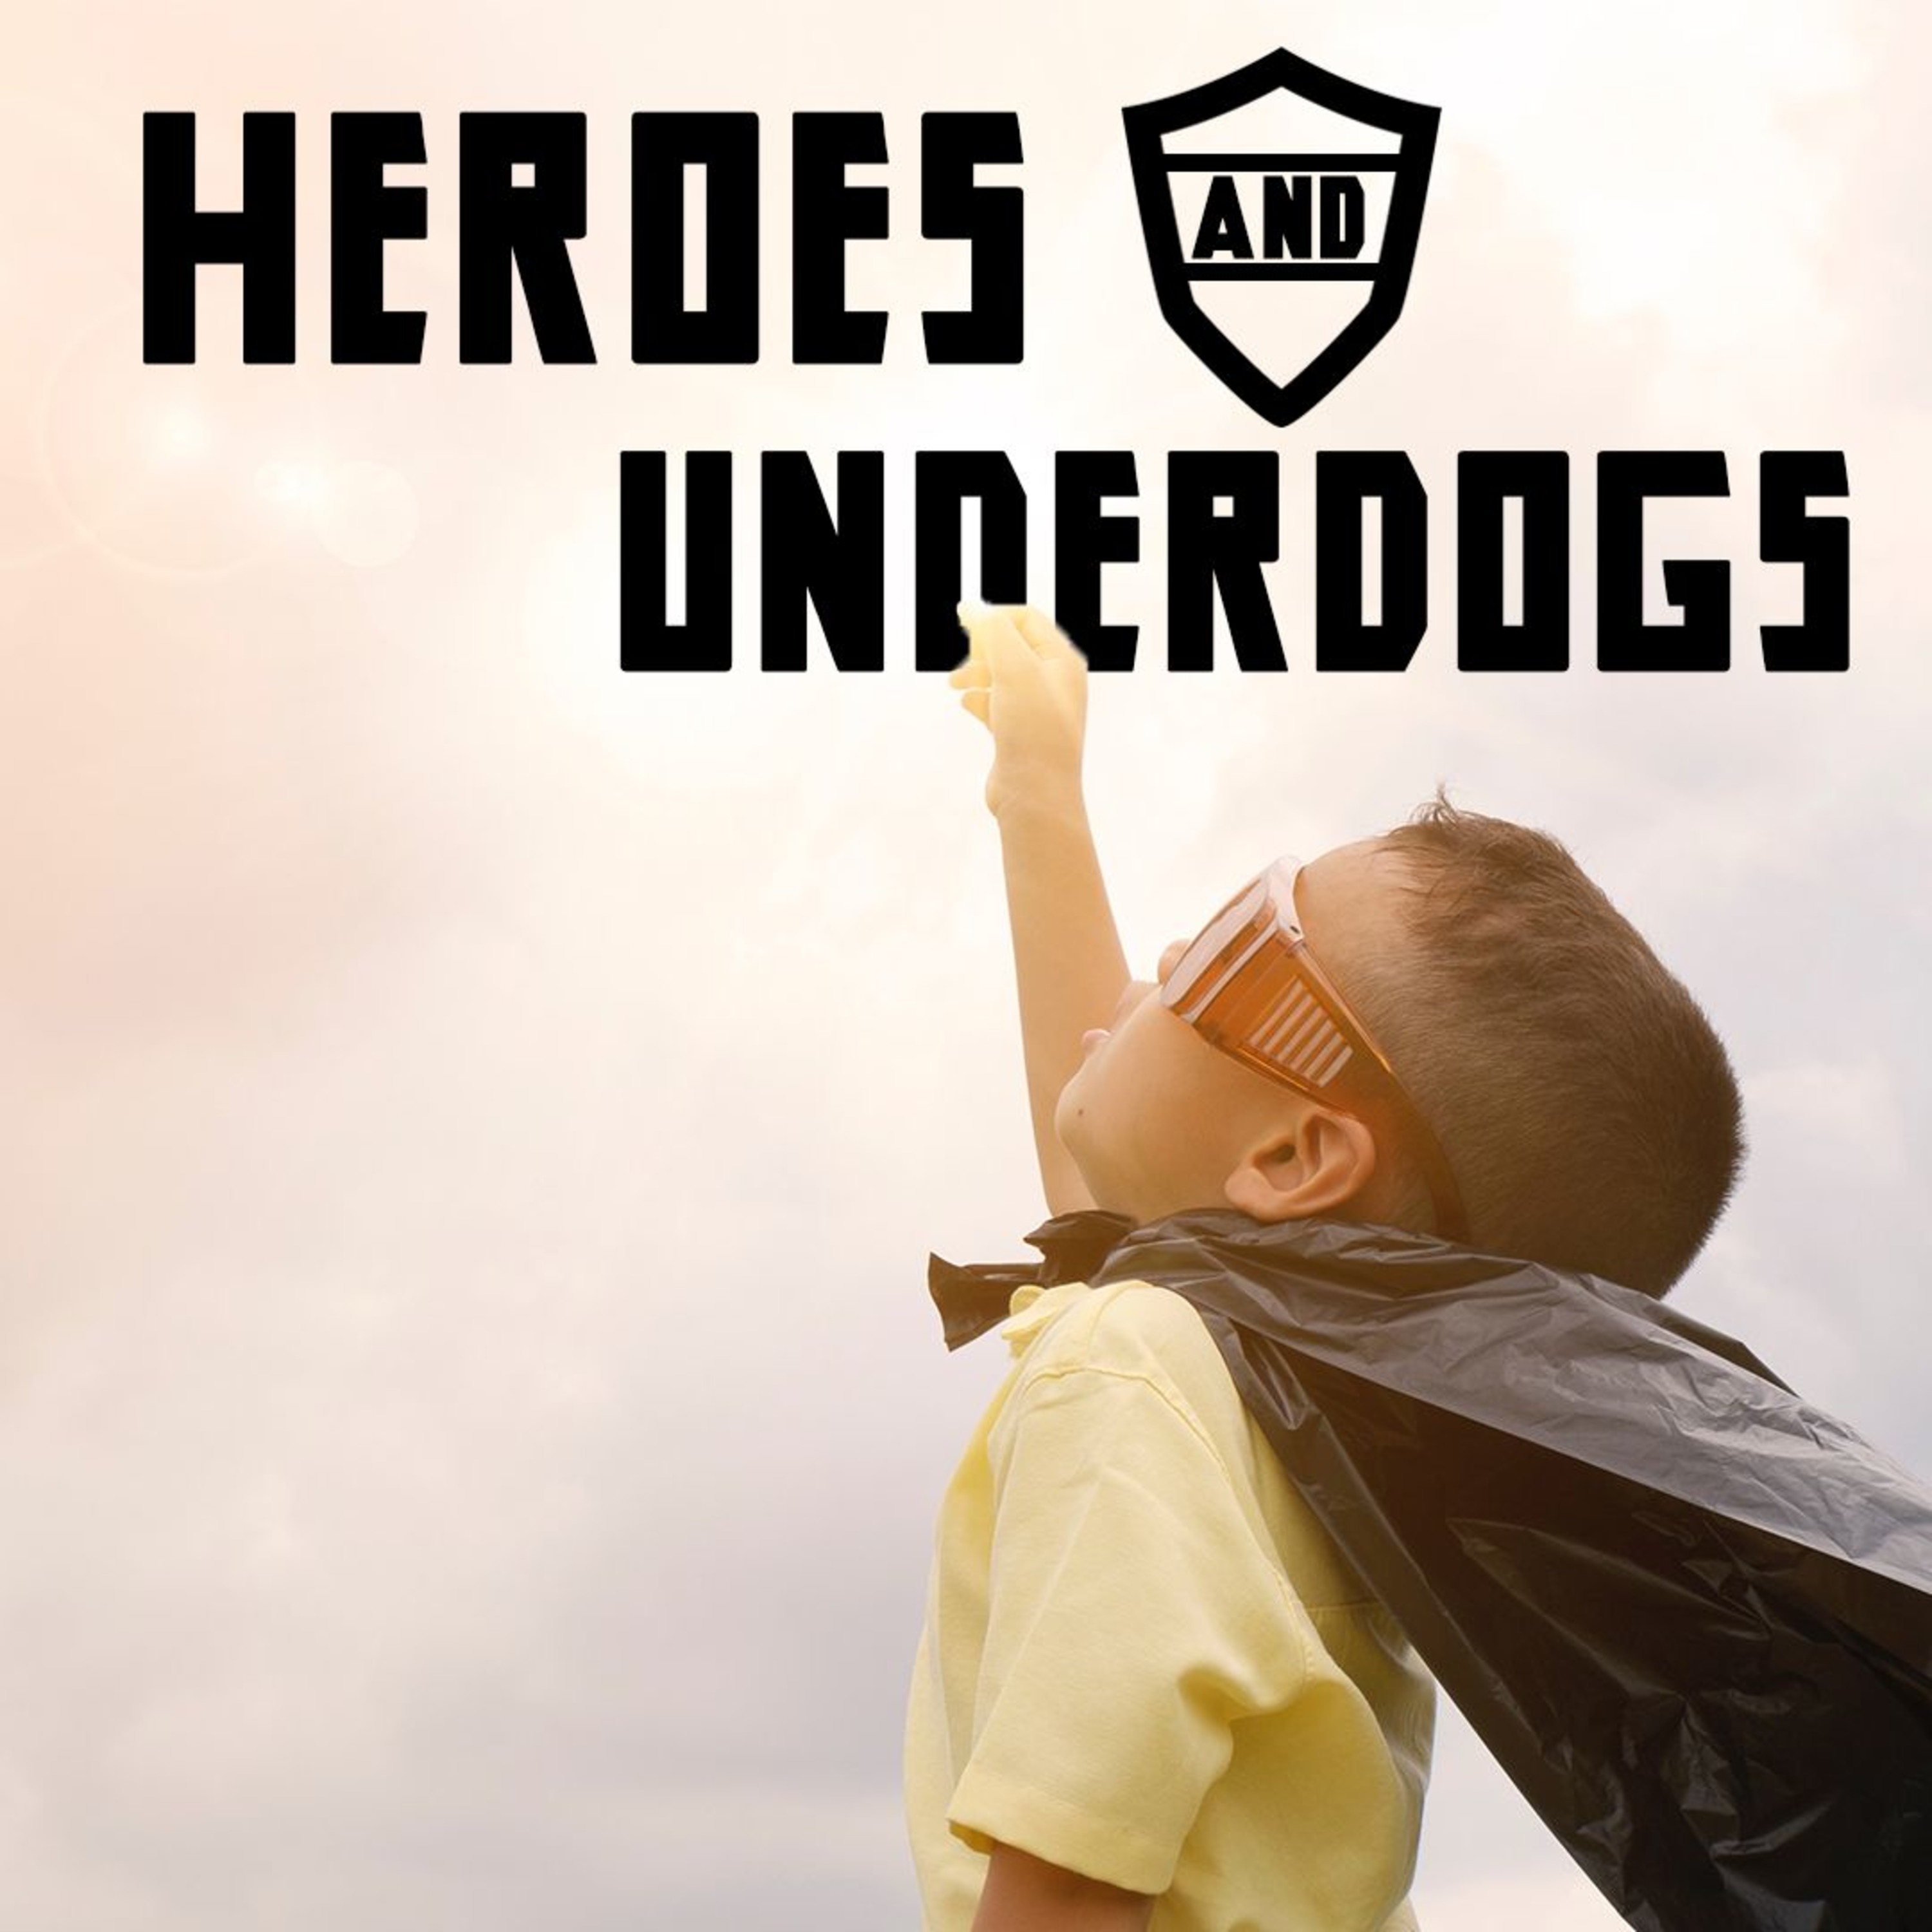 Heroes And Underdogs #19